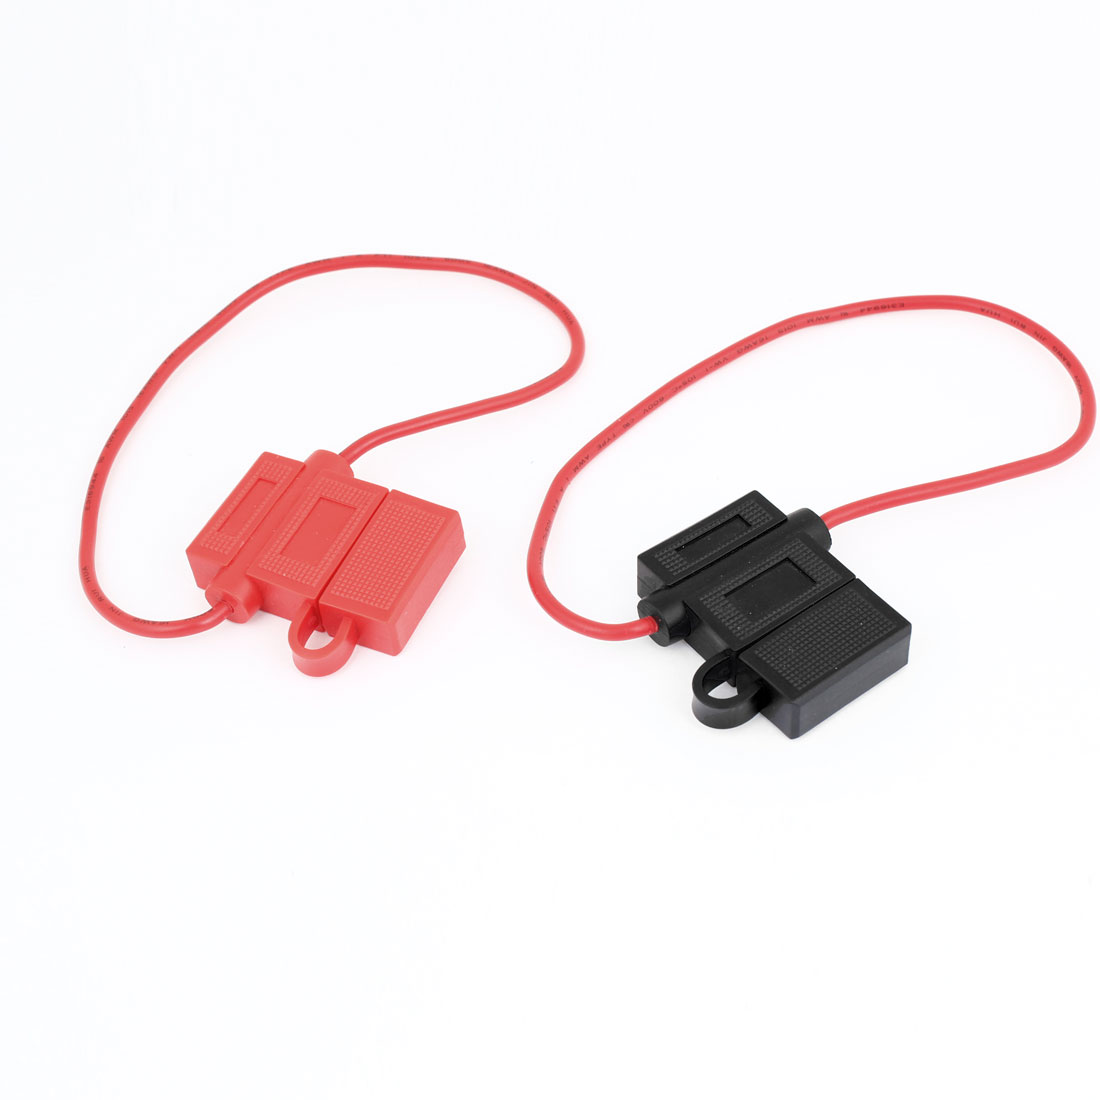 2 Pcs BH708 Black Red Plastic Blade Fuse Holder Container for Auto Car